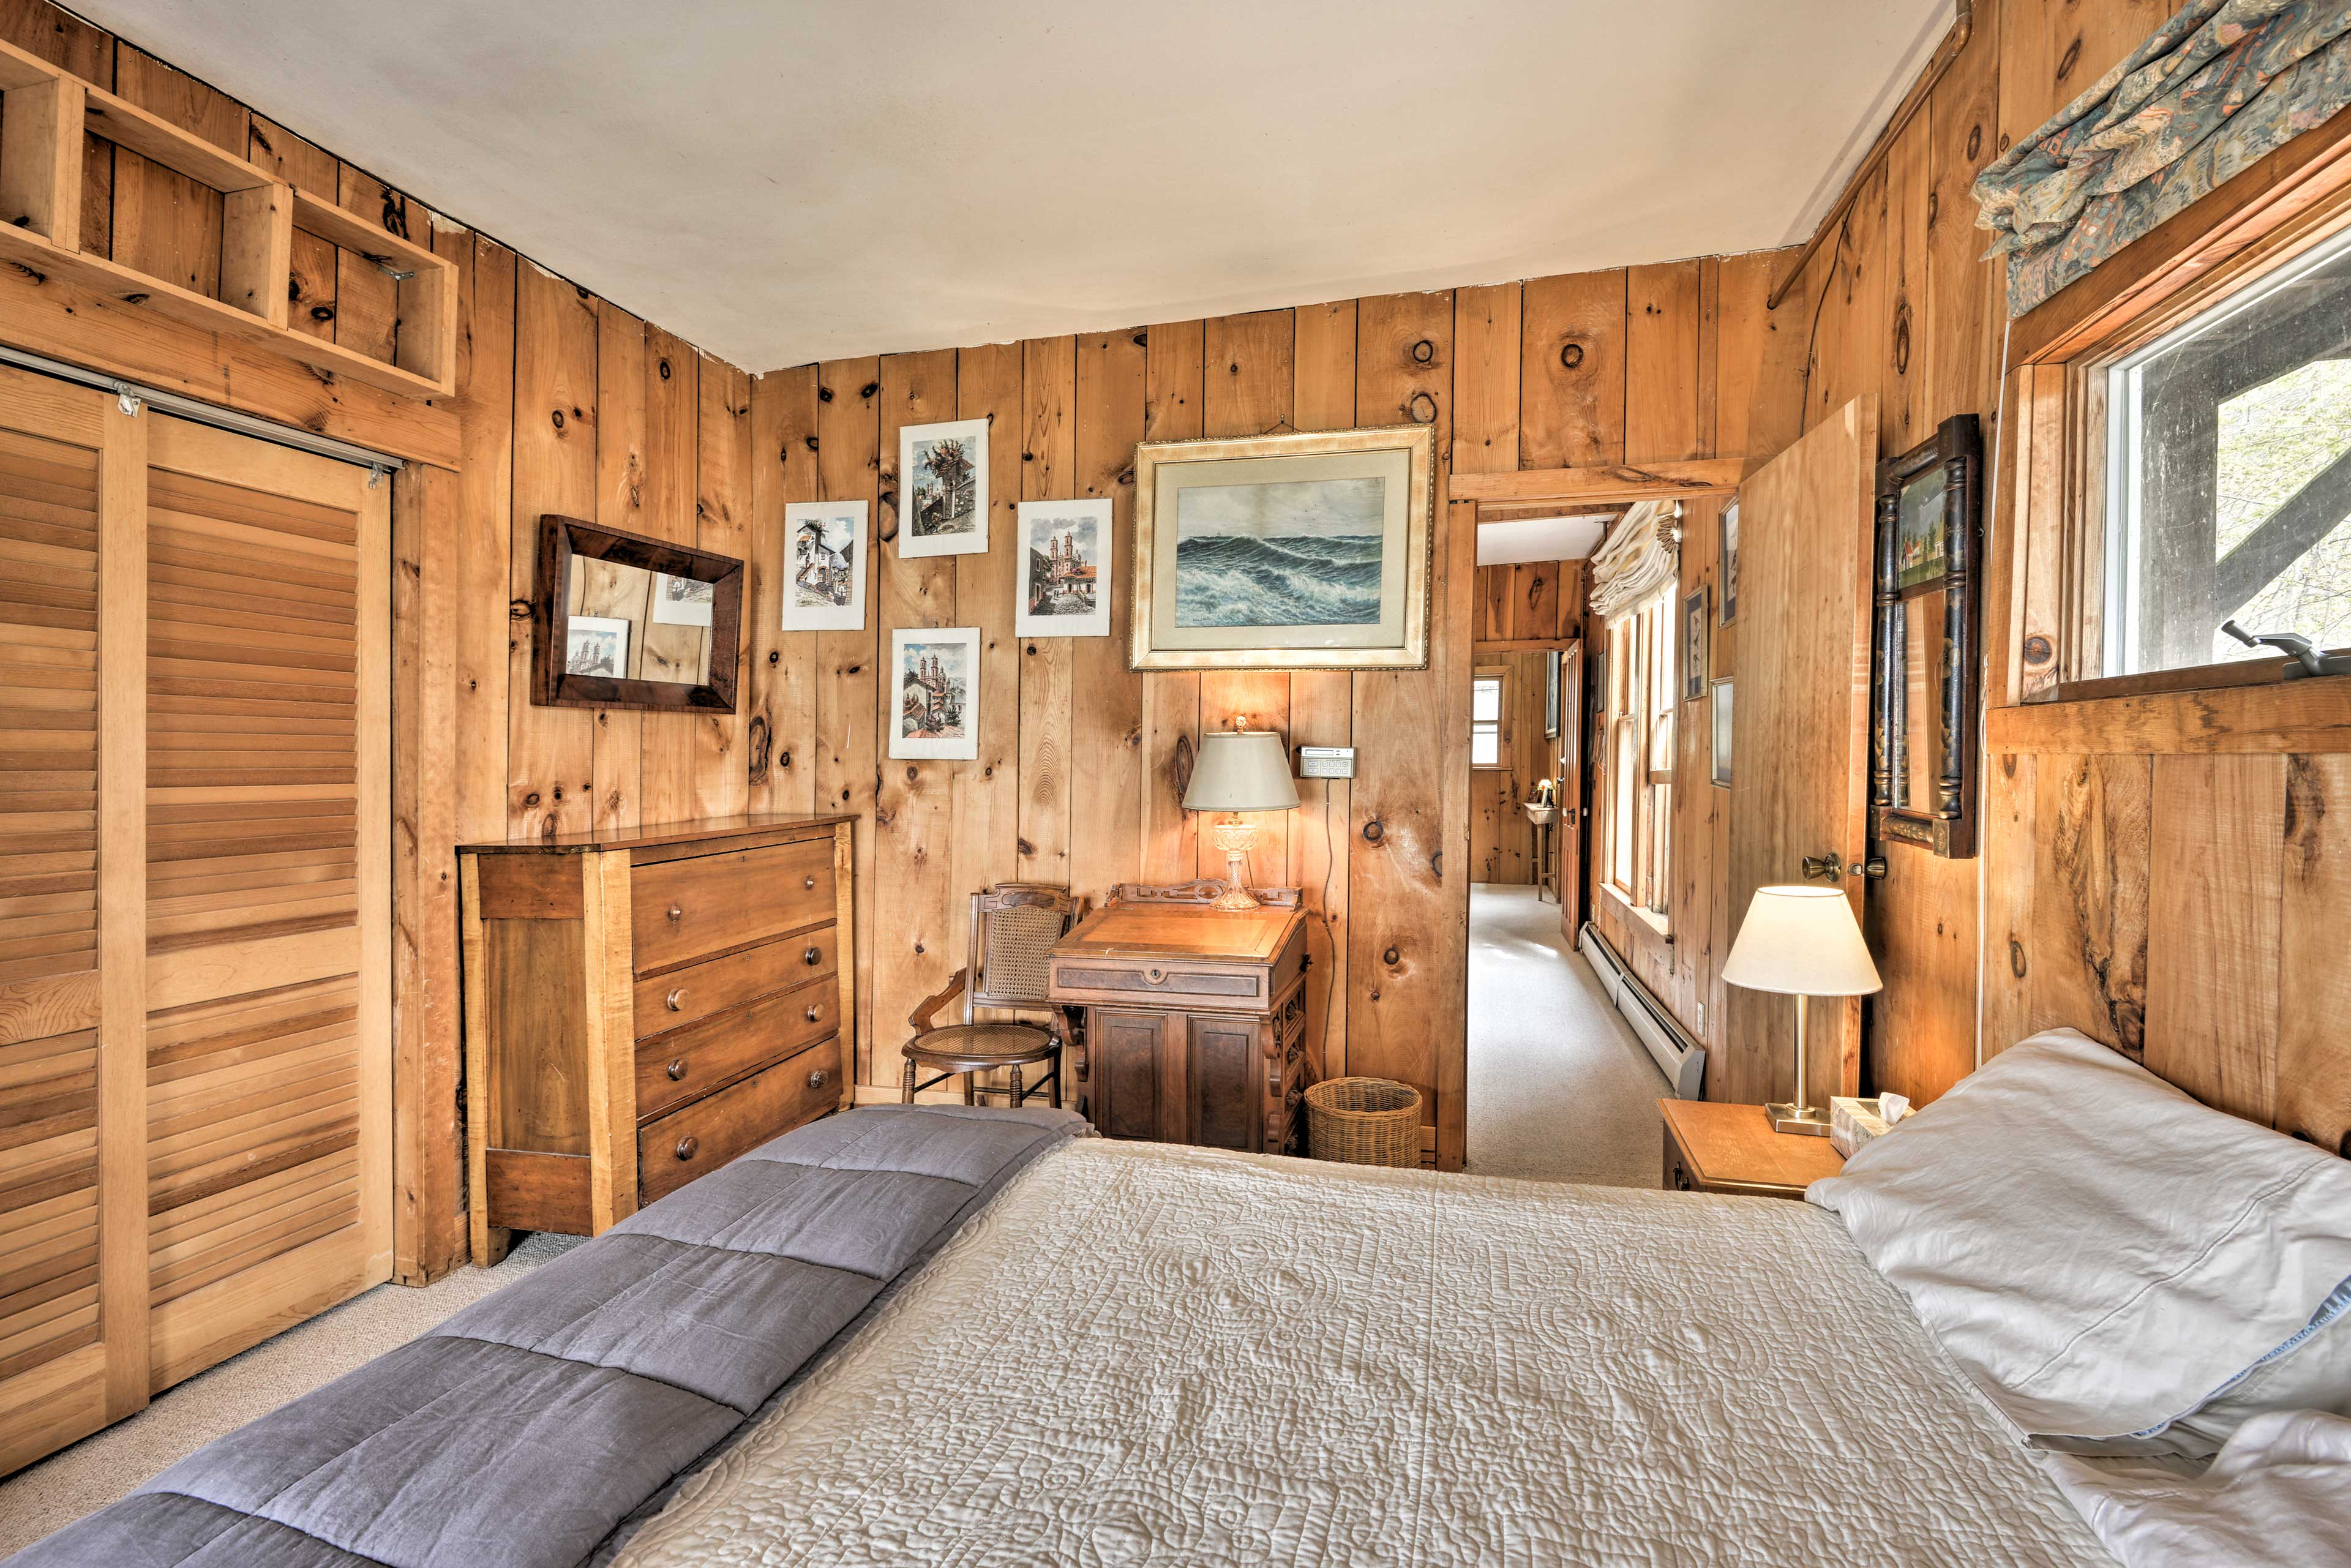 This bedroom also features ample storage space and direct deck access.